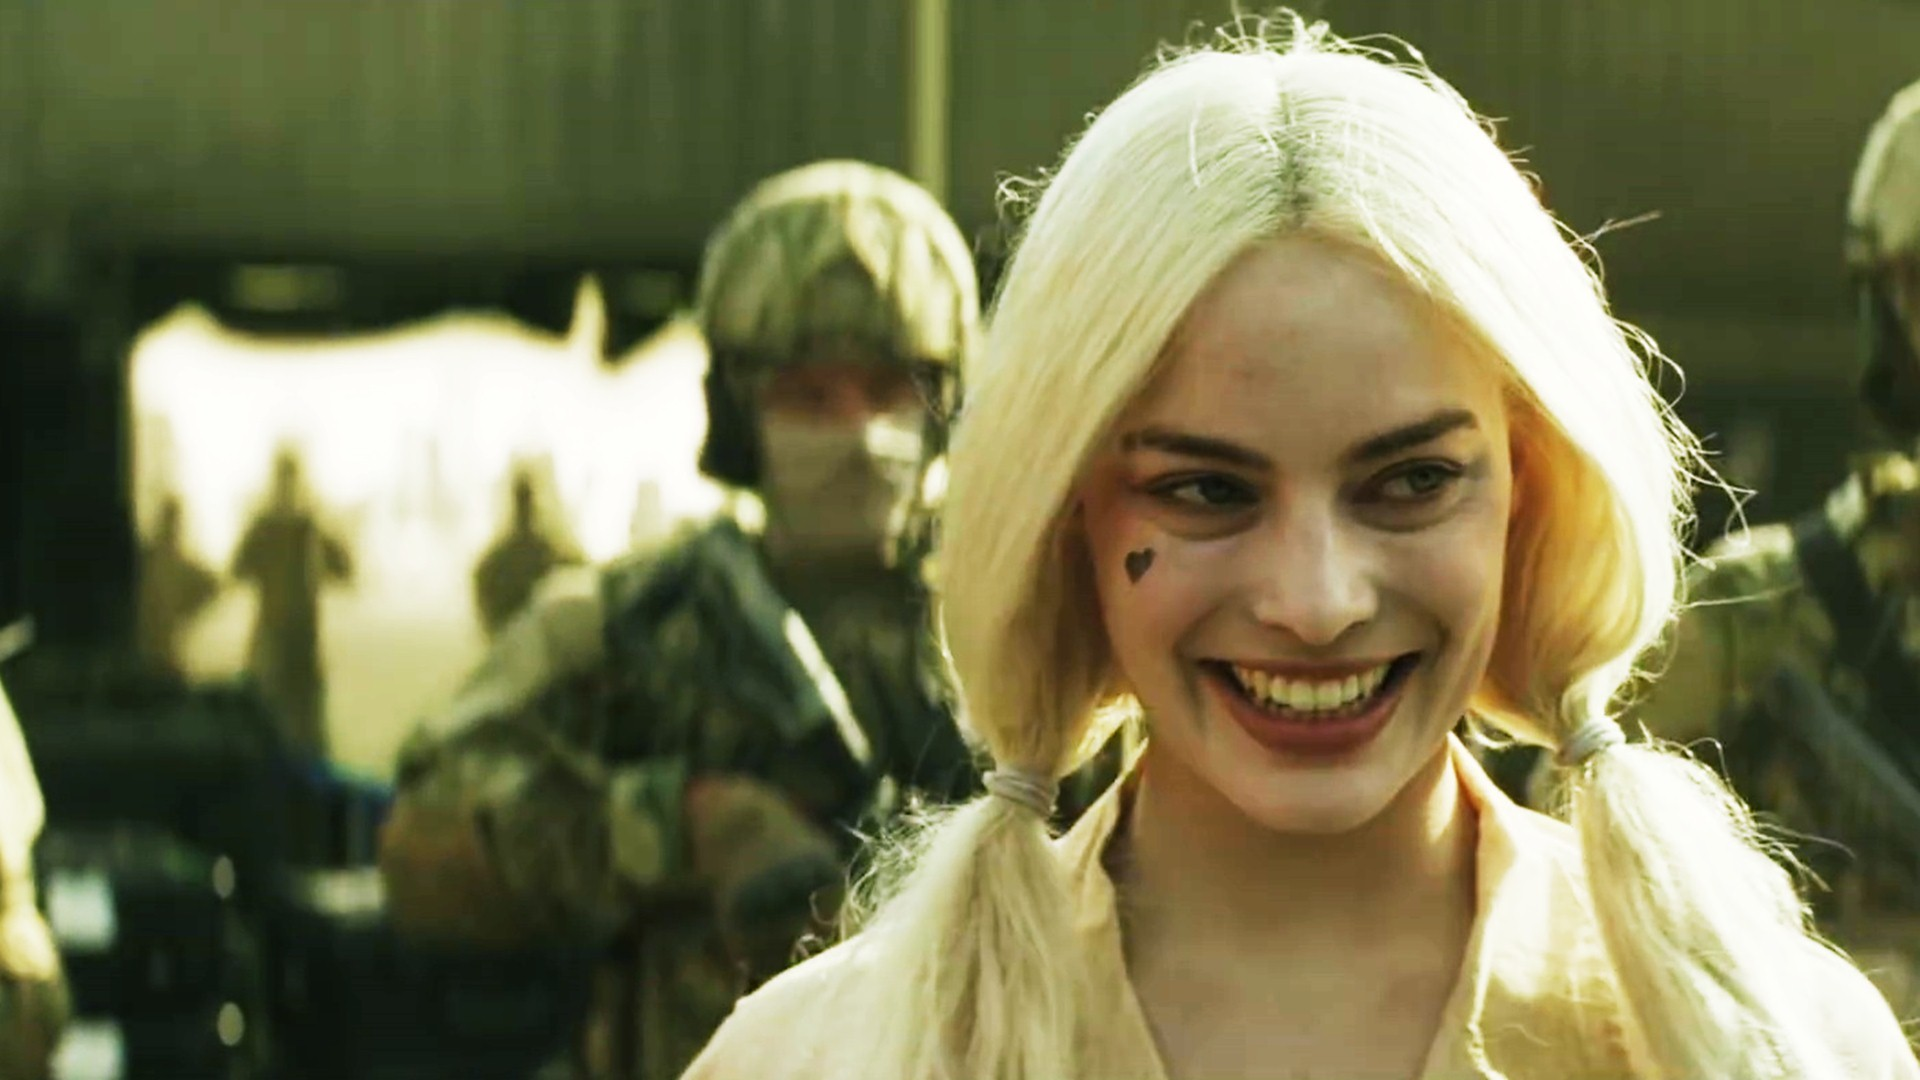 Margot Robbie As Harley Quinn In Suicide Squad 03394 …